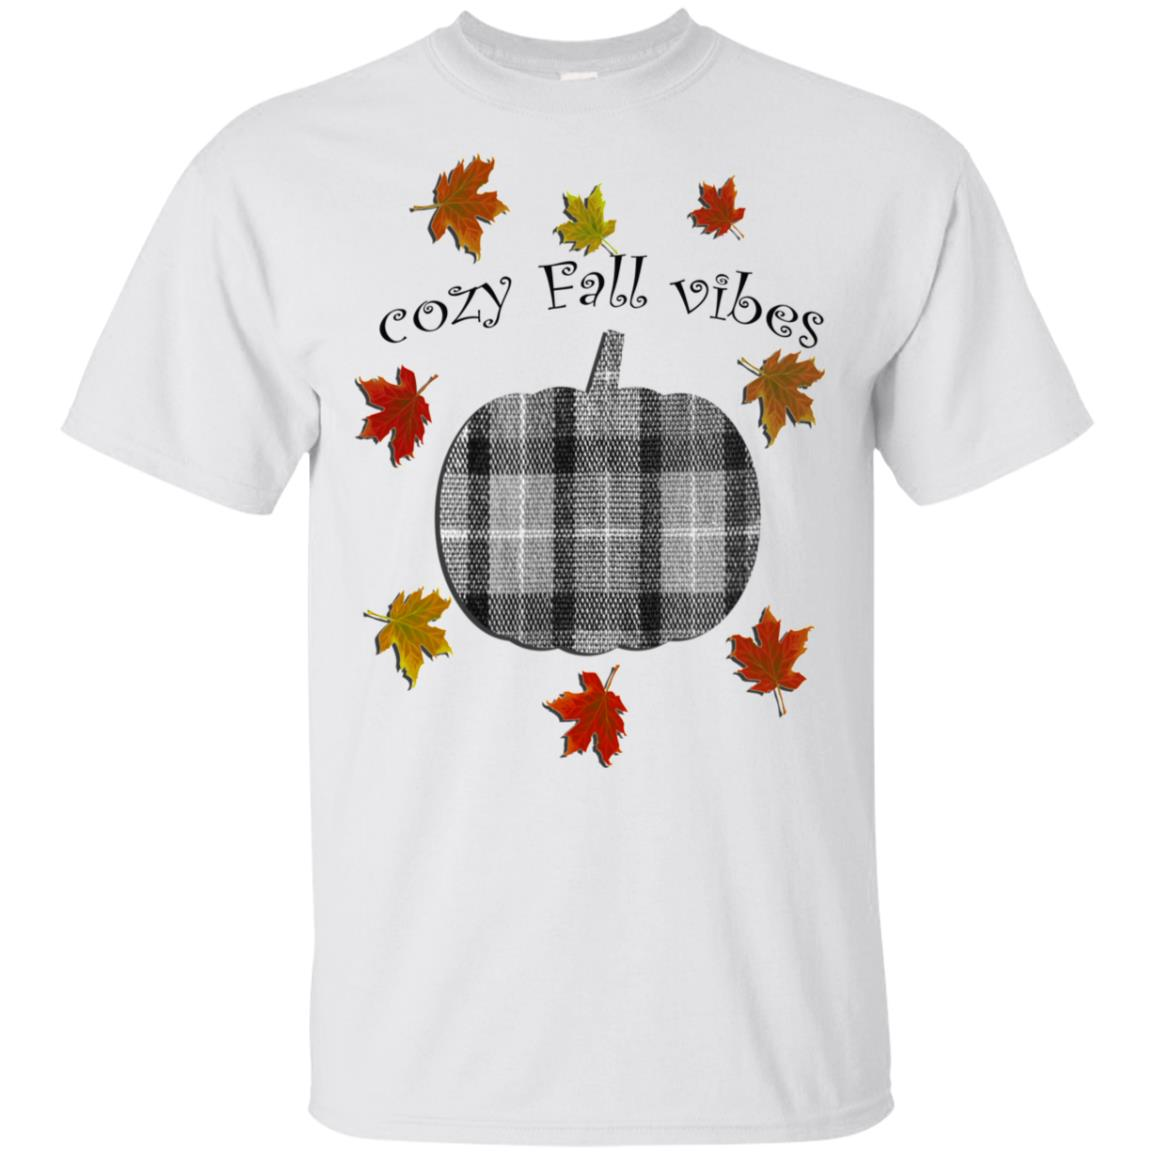 Autumn, Cozy Fall Vibes Pumpkin Flannel Graphic Gift Unisex Short Sleeve